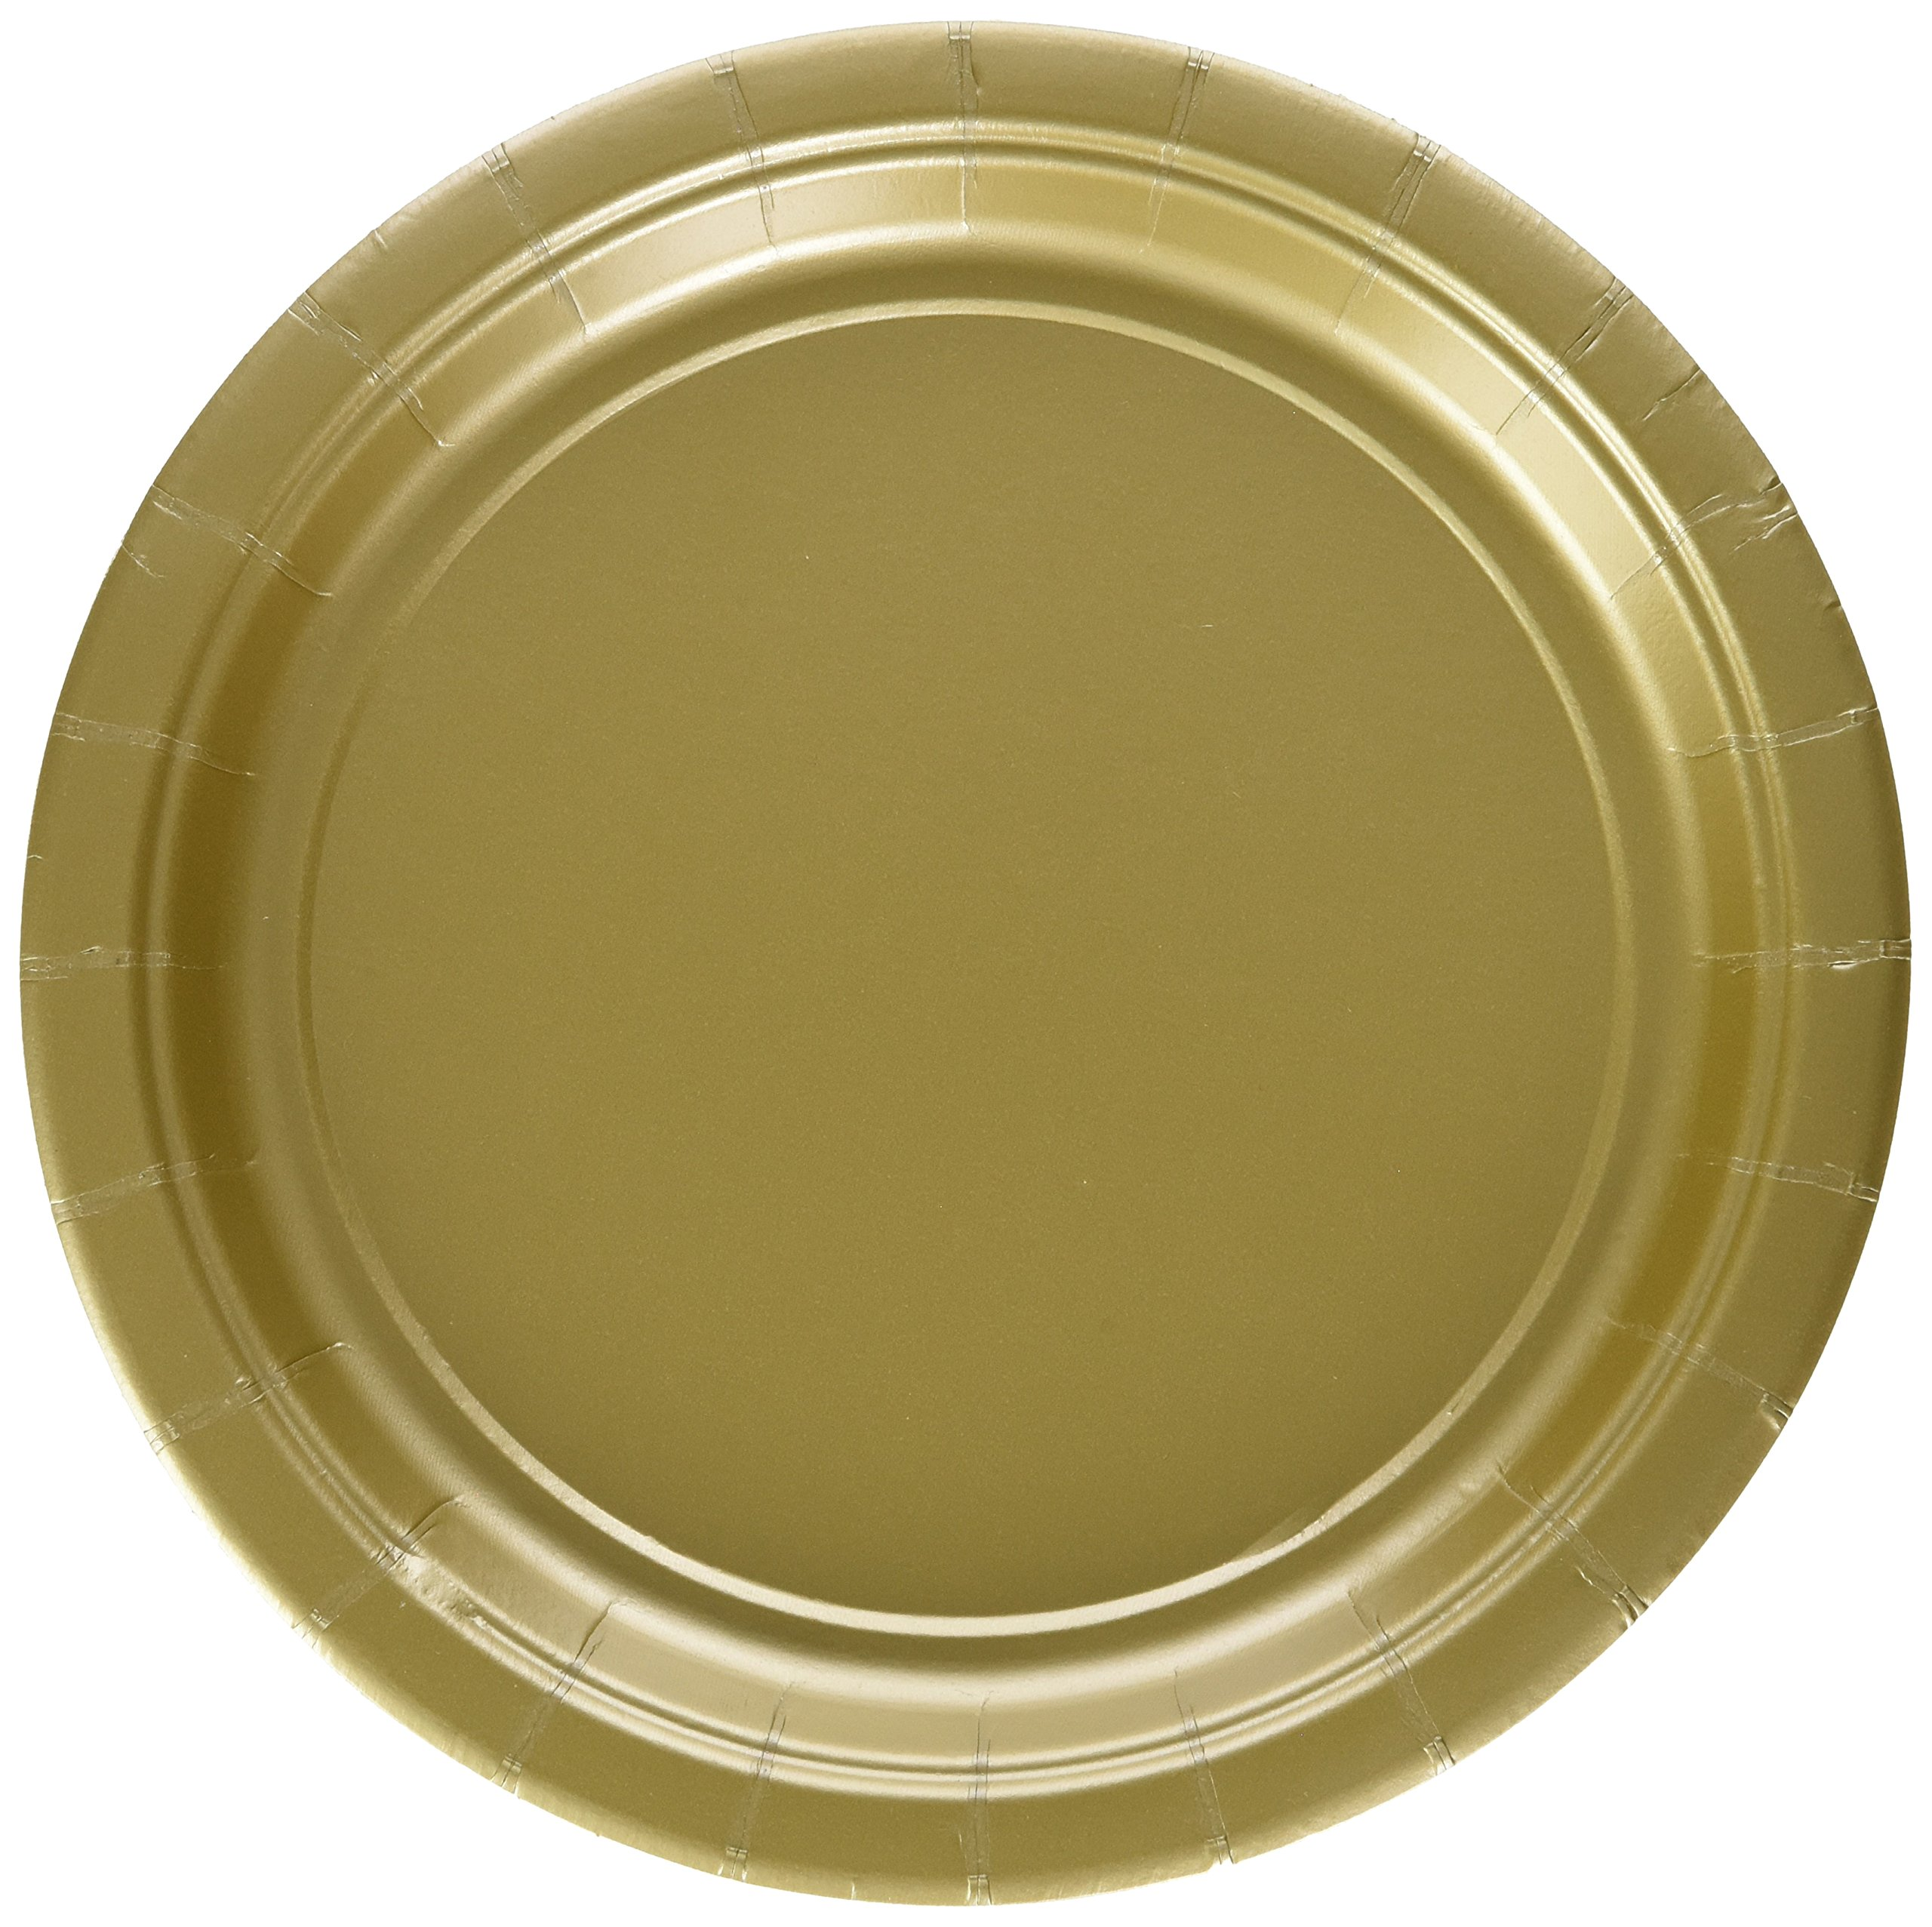 Amscan Durable Round Dessert Plates Big Bundle Party Tableware Paper, 7'', Pack of 50 Childrens, Gold, 7''